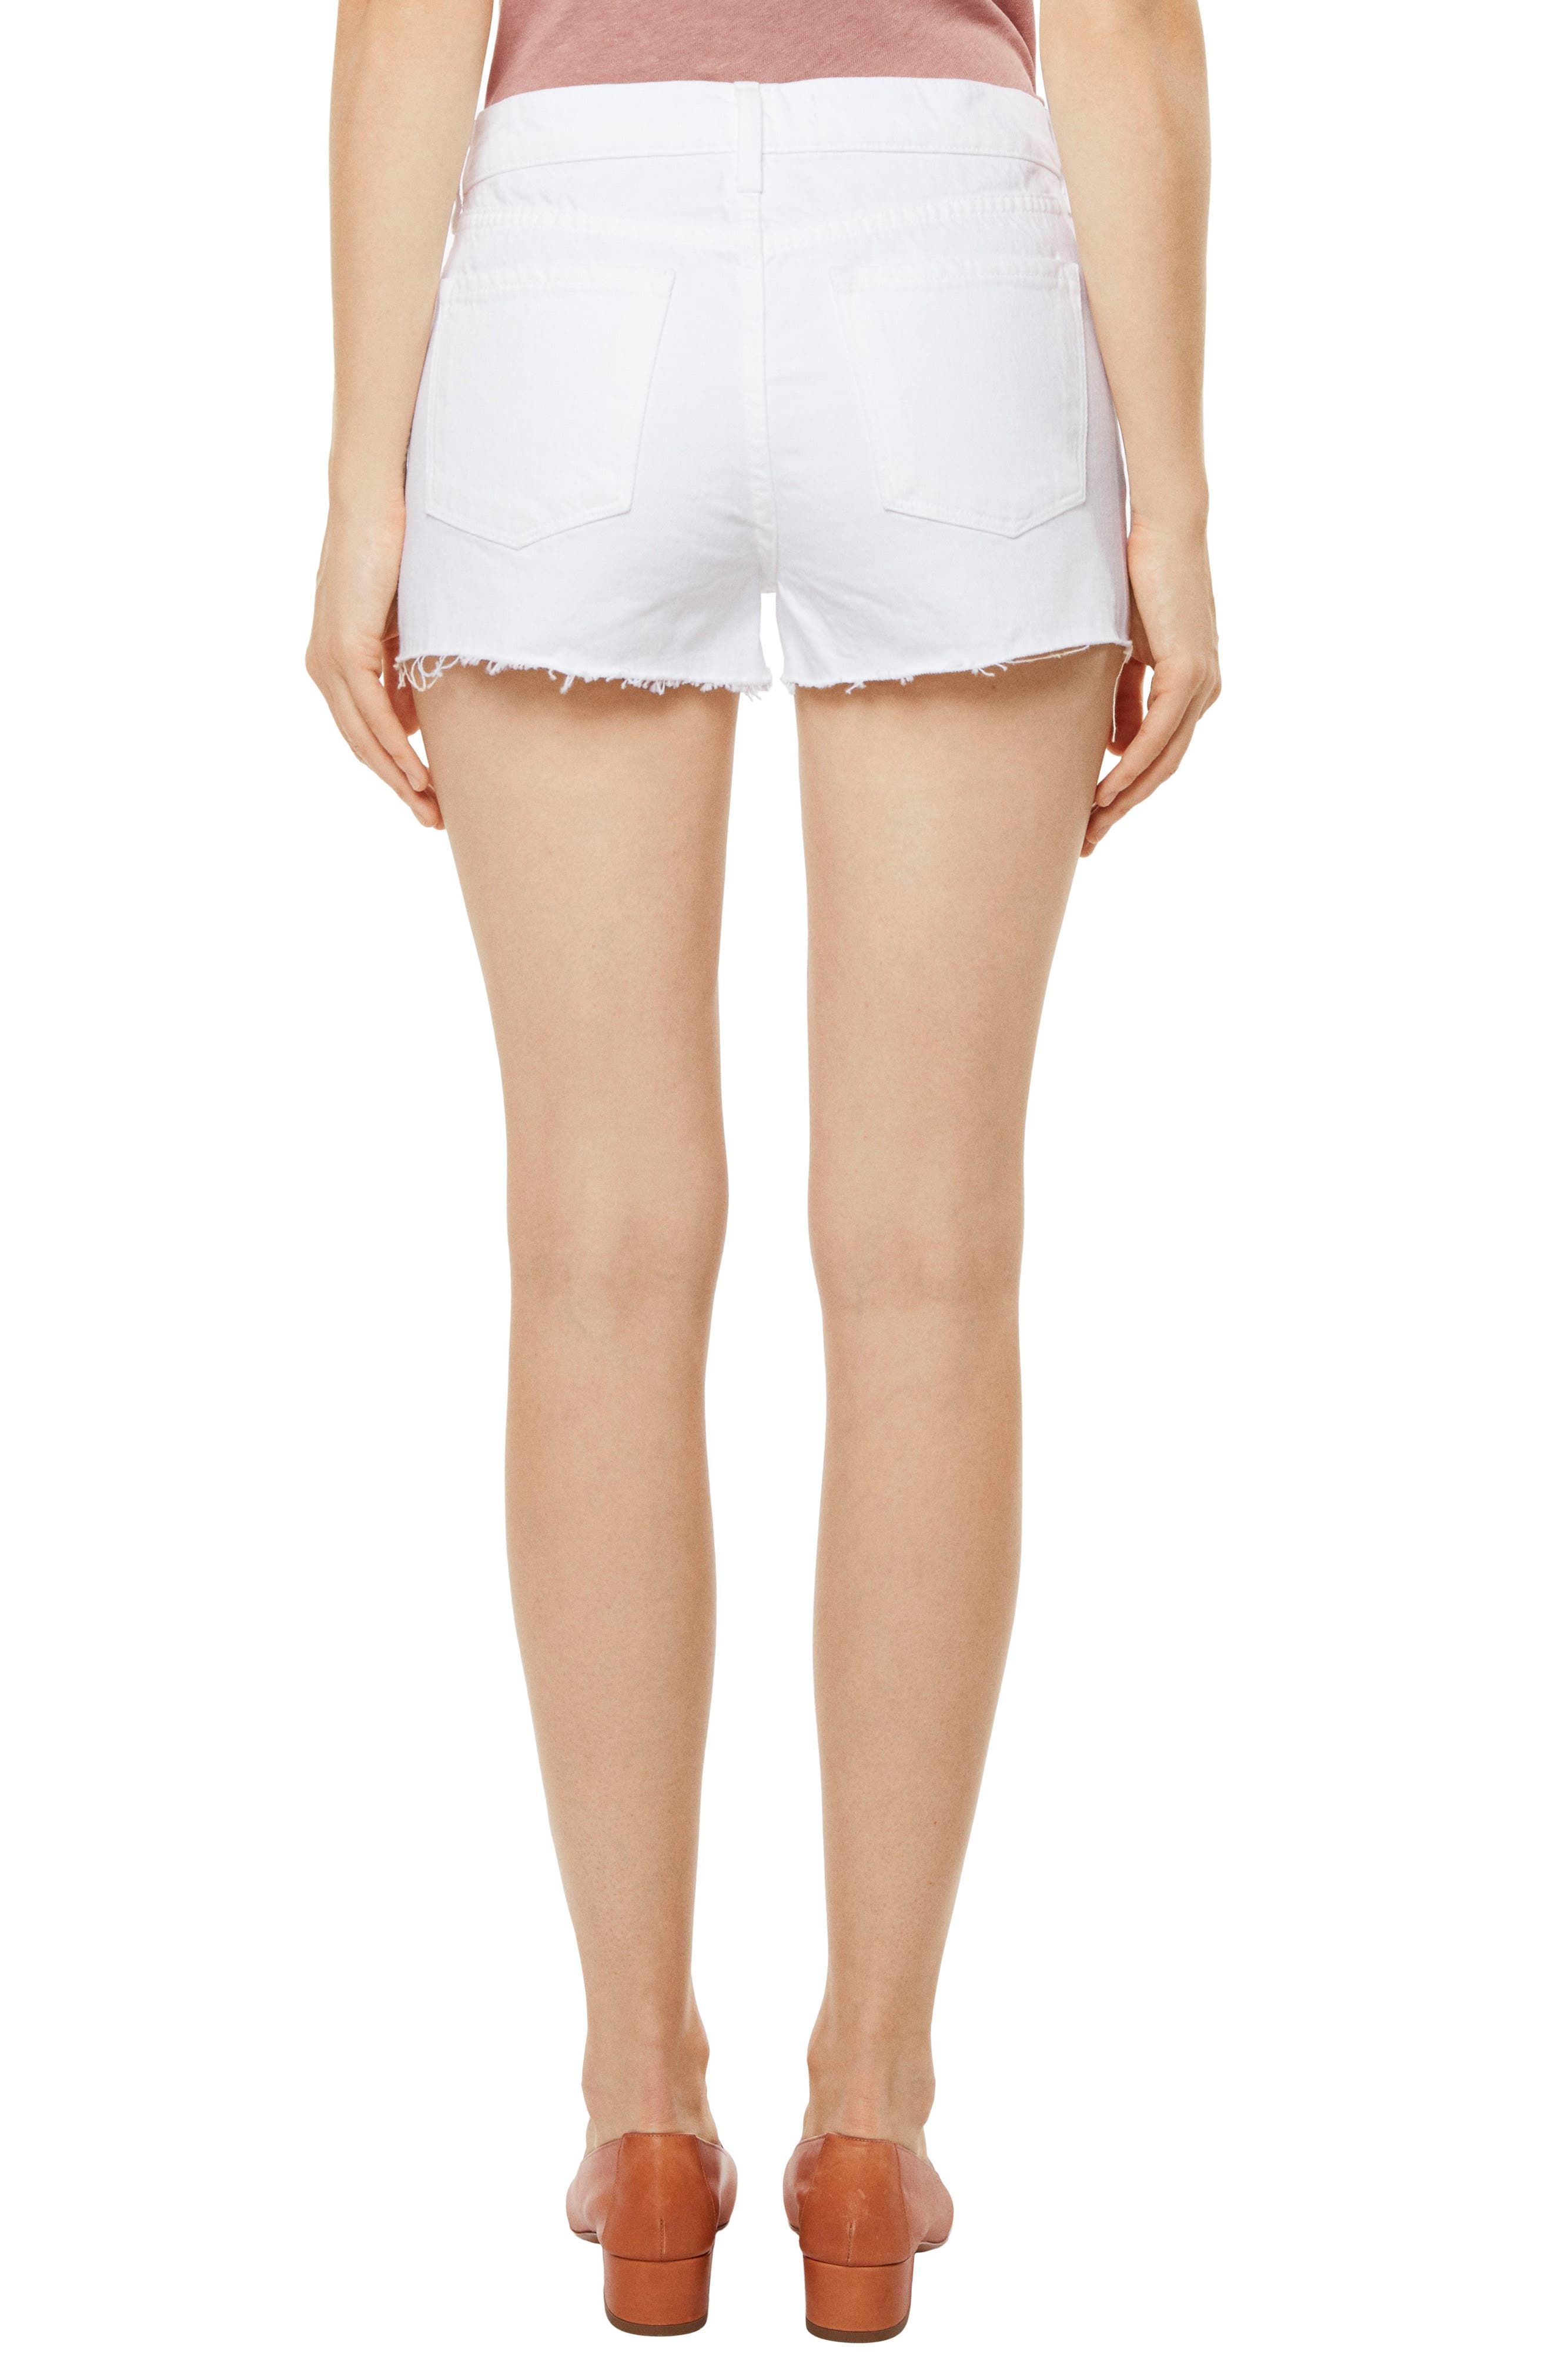 J BRAND,                             Raw Hem Denim Shorts,                             Alternate thumbnail 2, color,                             109